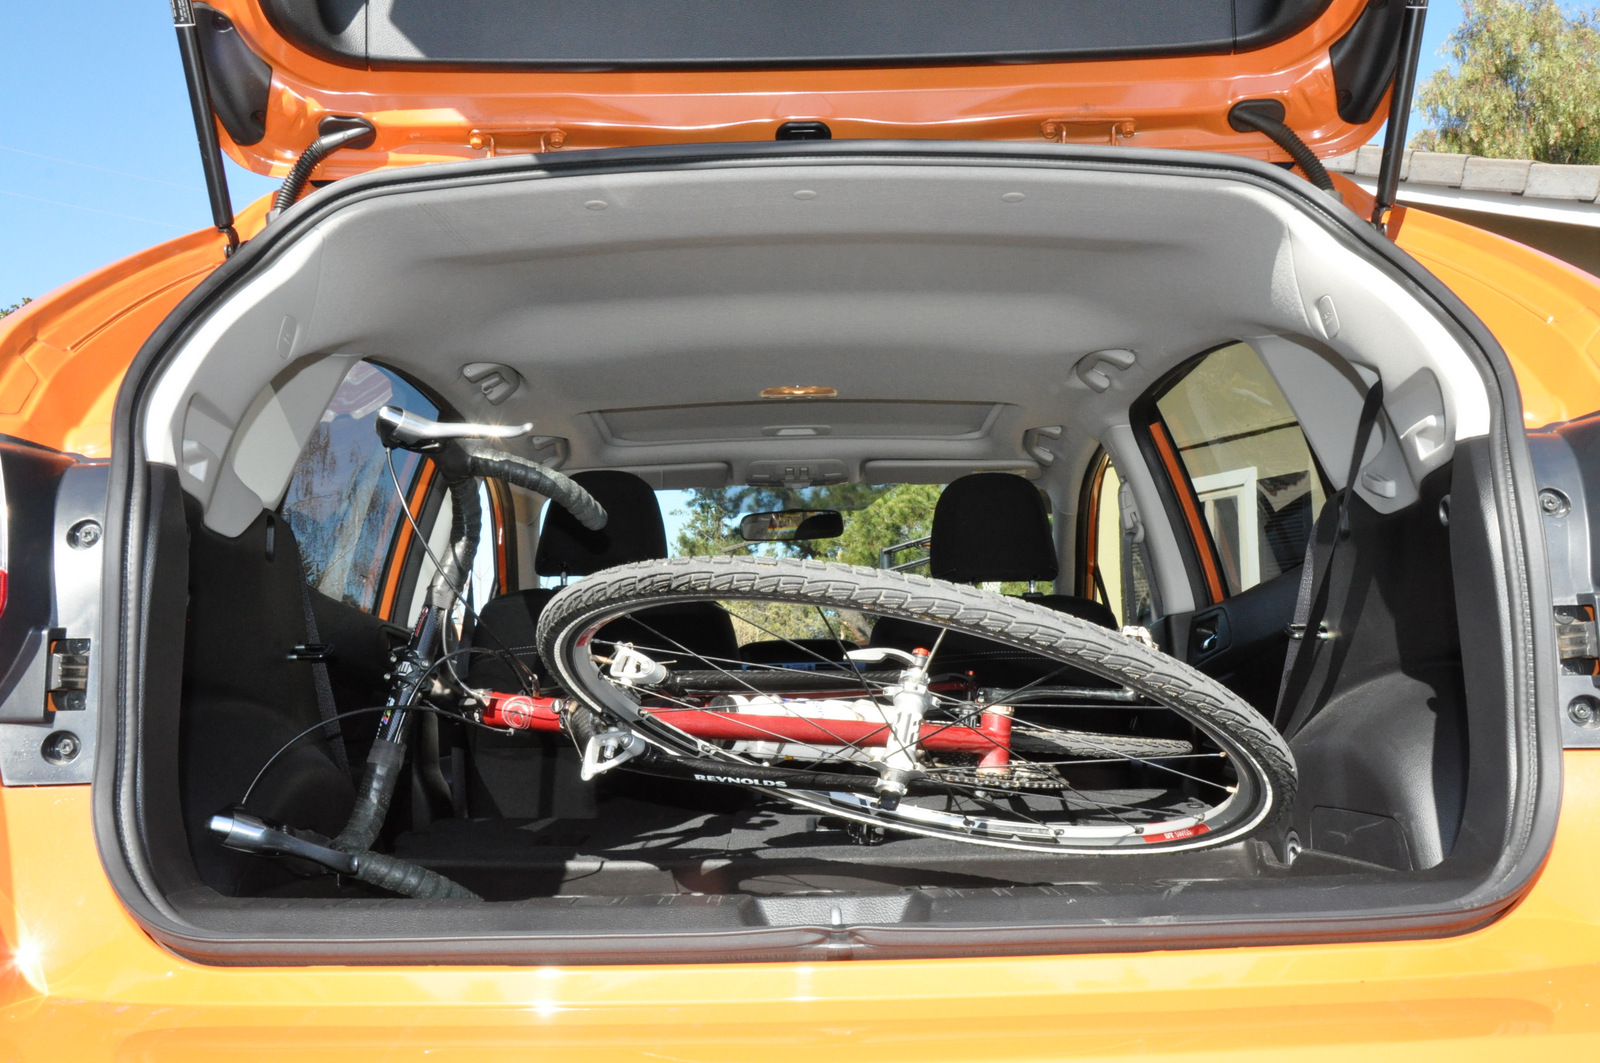 Subaru XV Crosstrek with bike